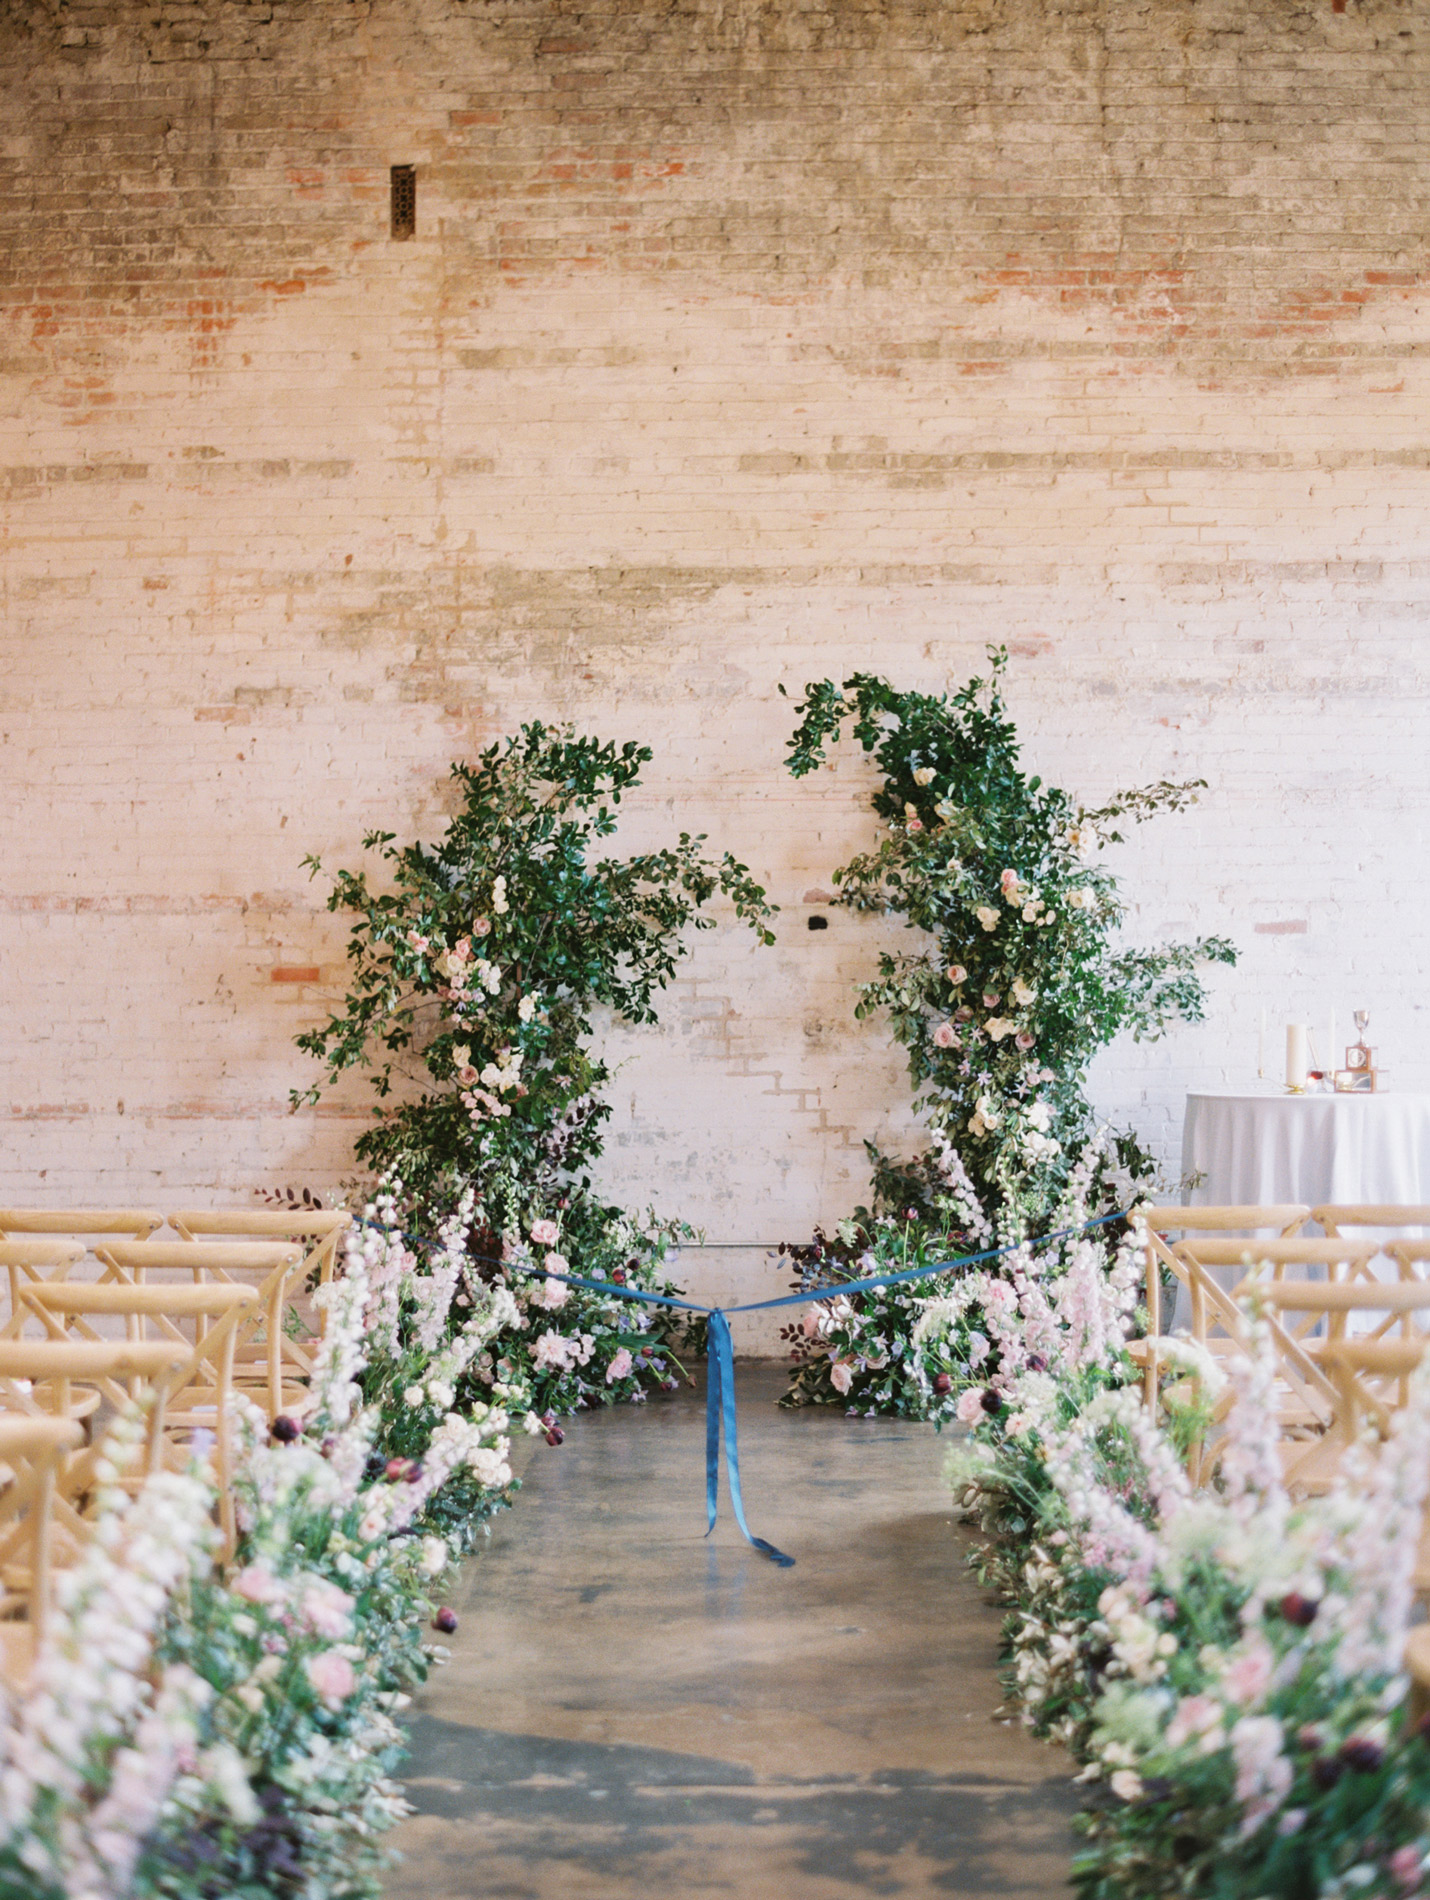 aisle decorated with flowers leading to floral arch